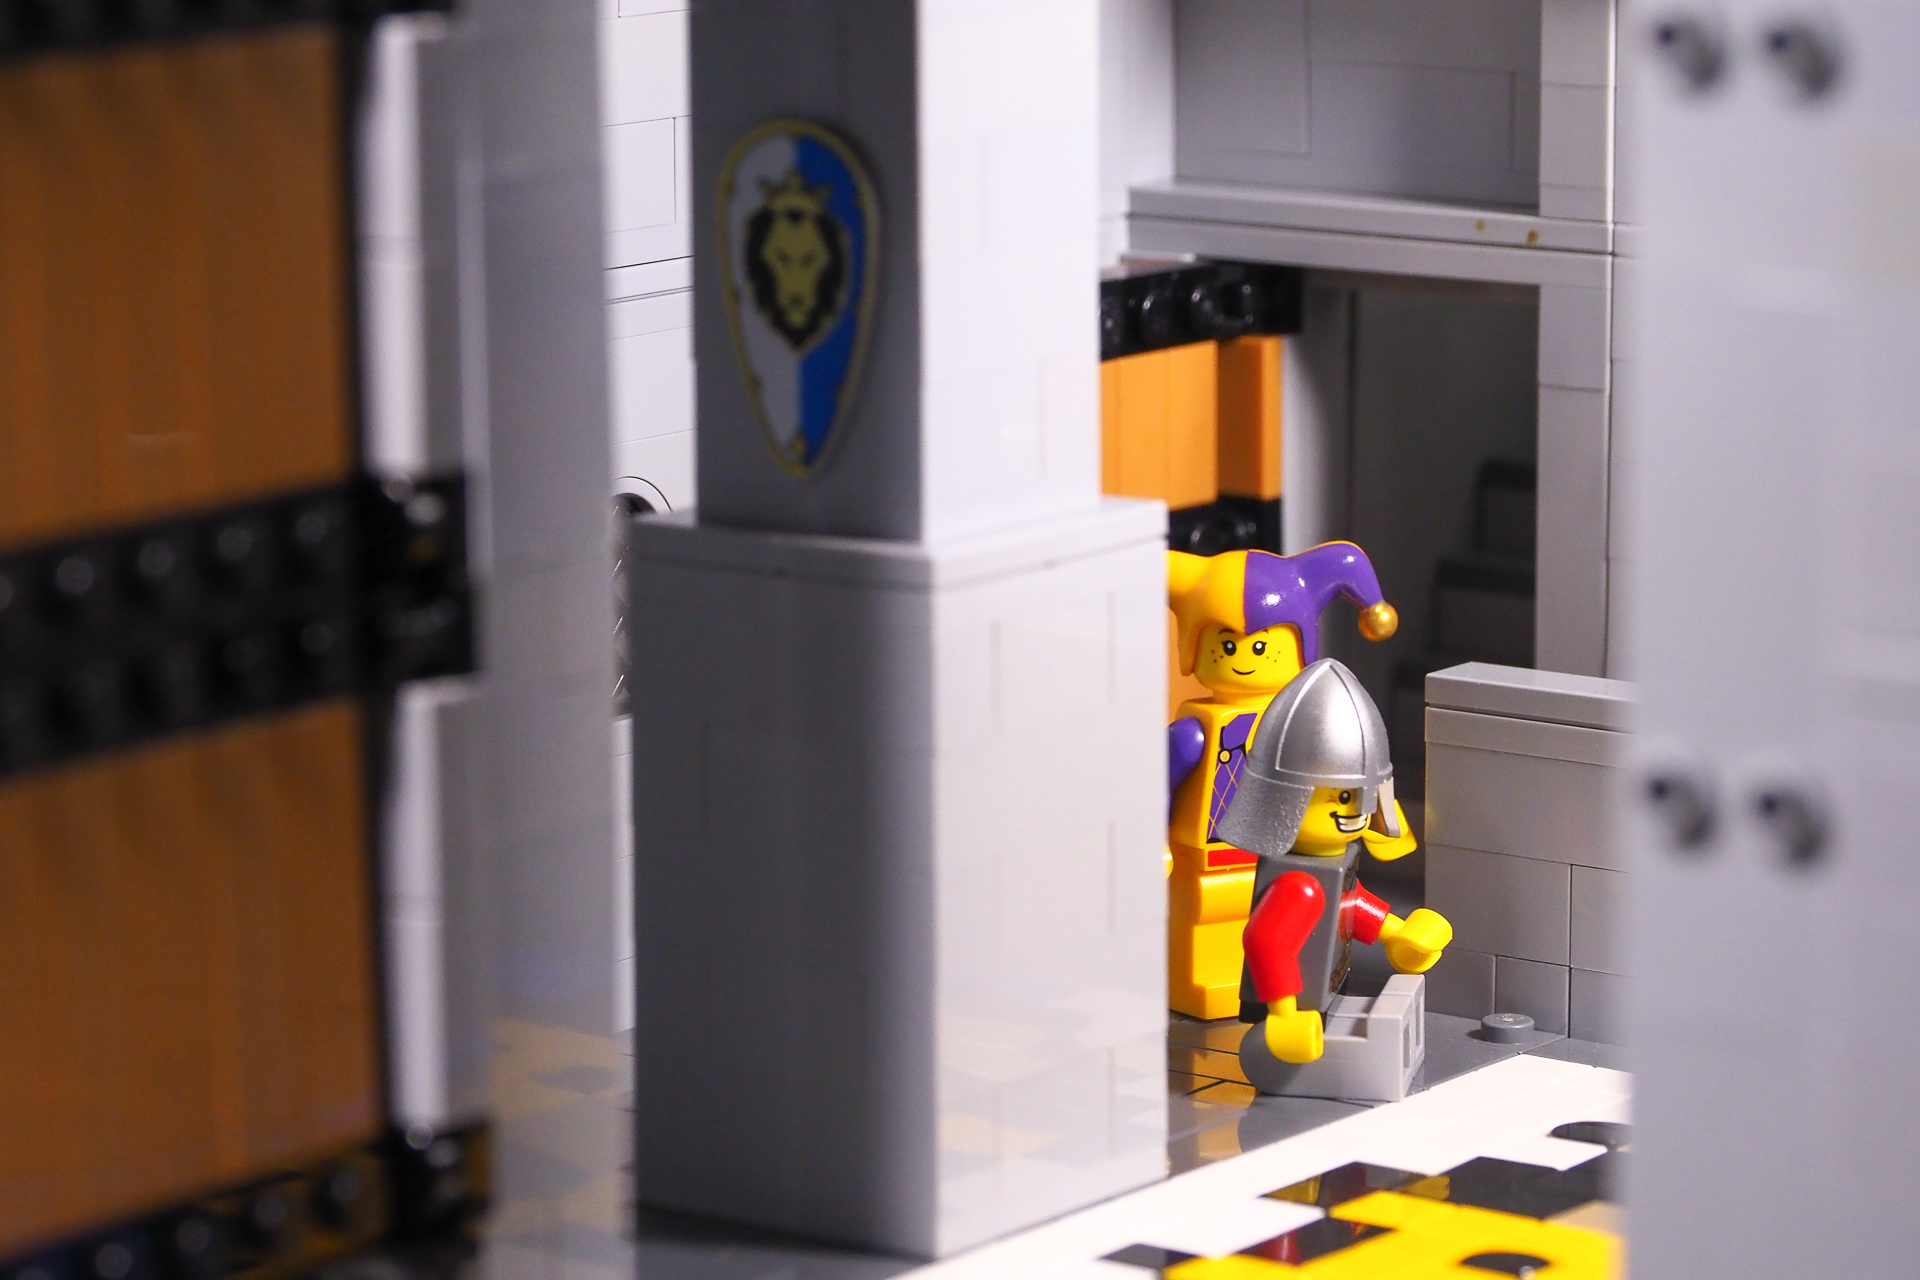 LHS: Reverse doors to save on parts | Centre: use studs to hold Minifigures | RHS: remove sections to gain access